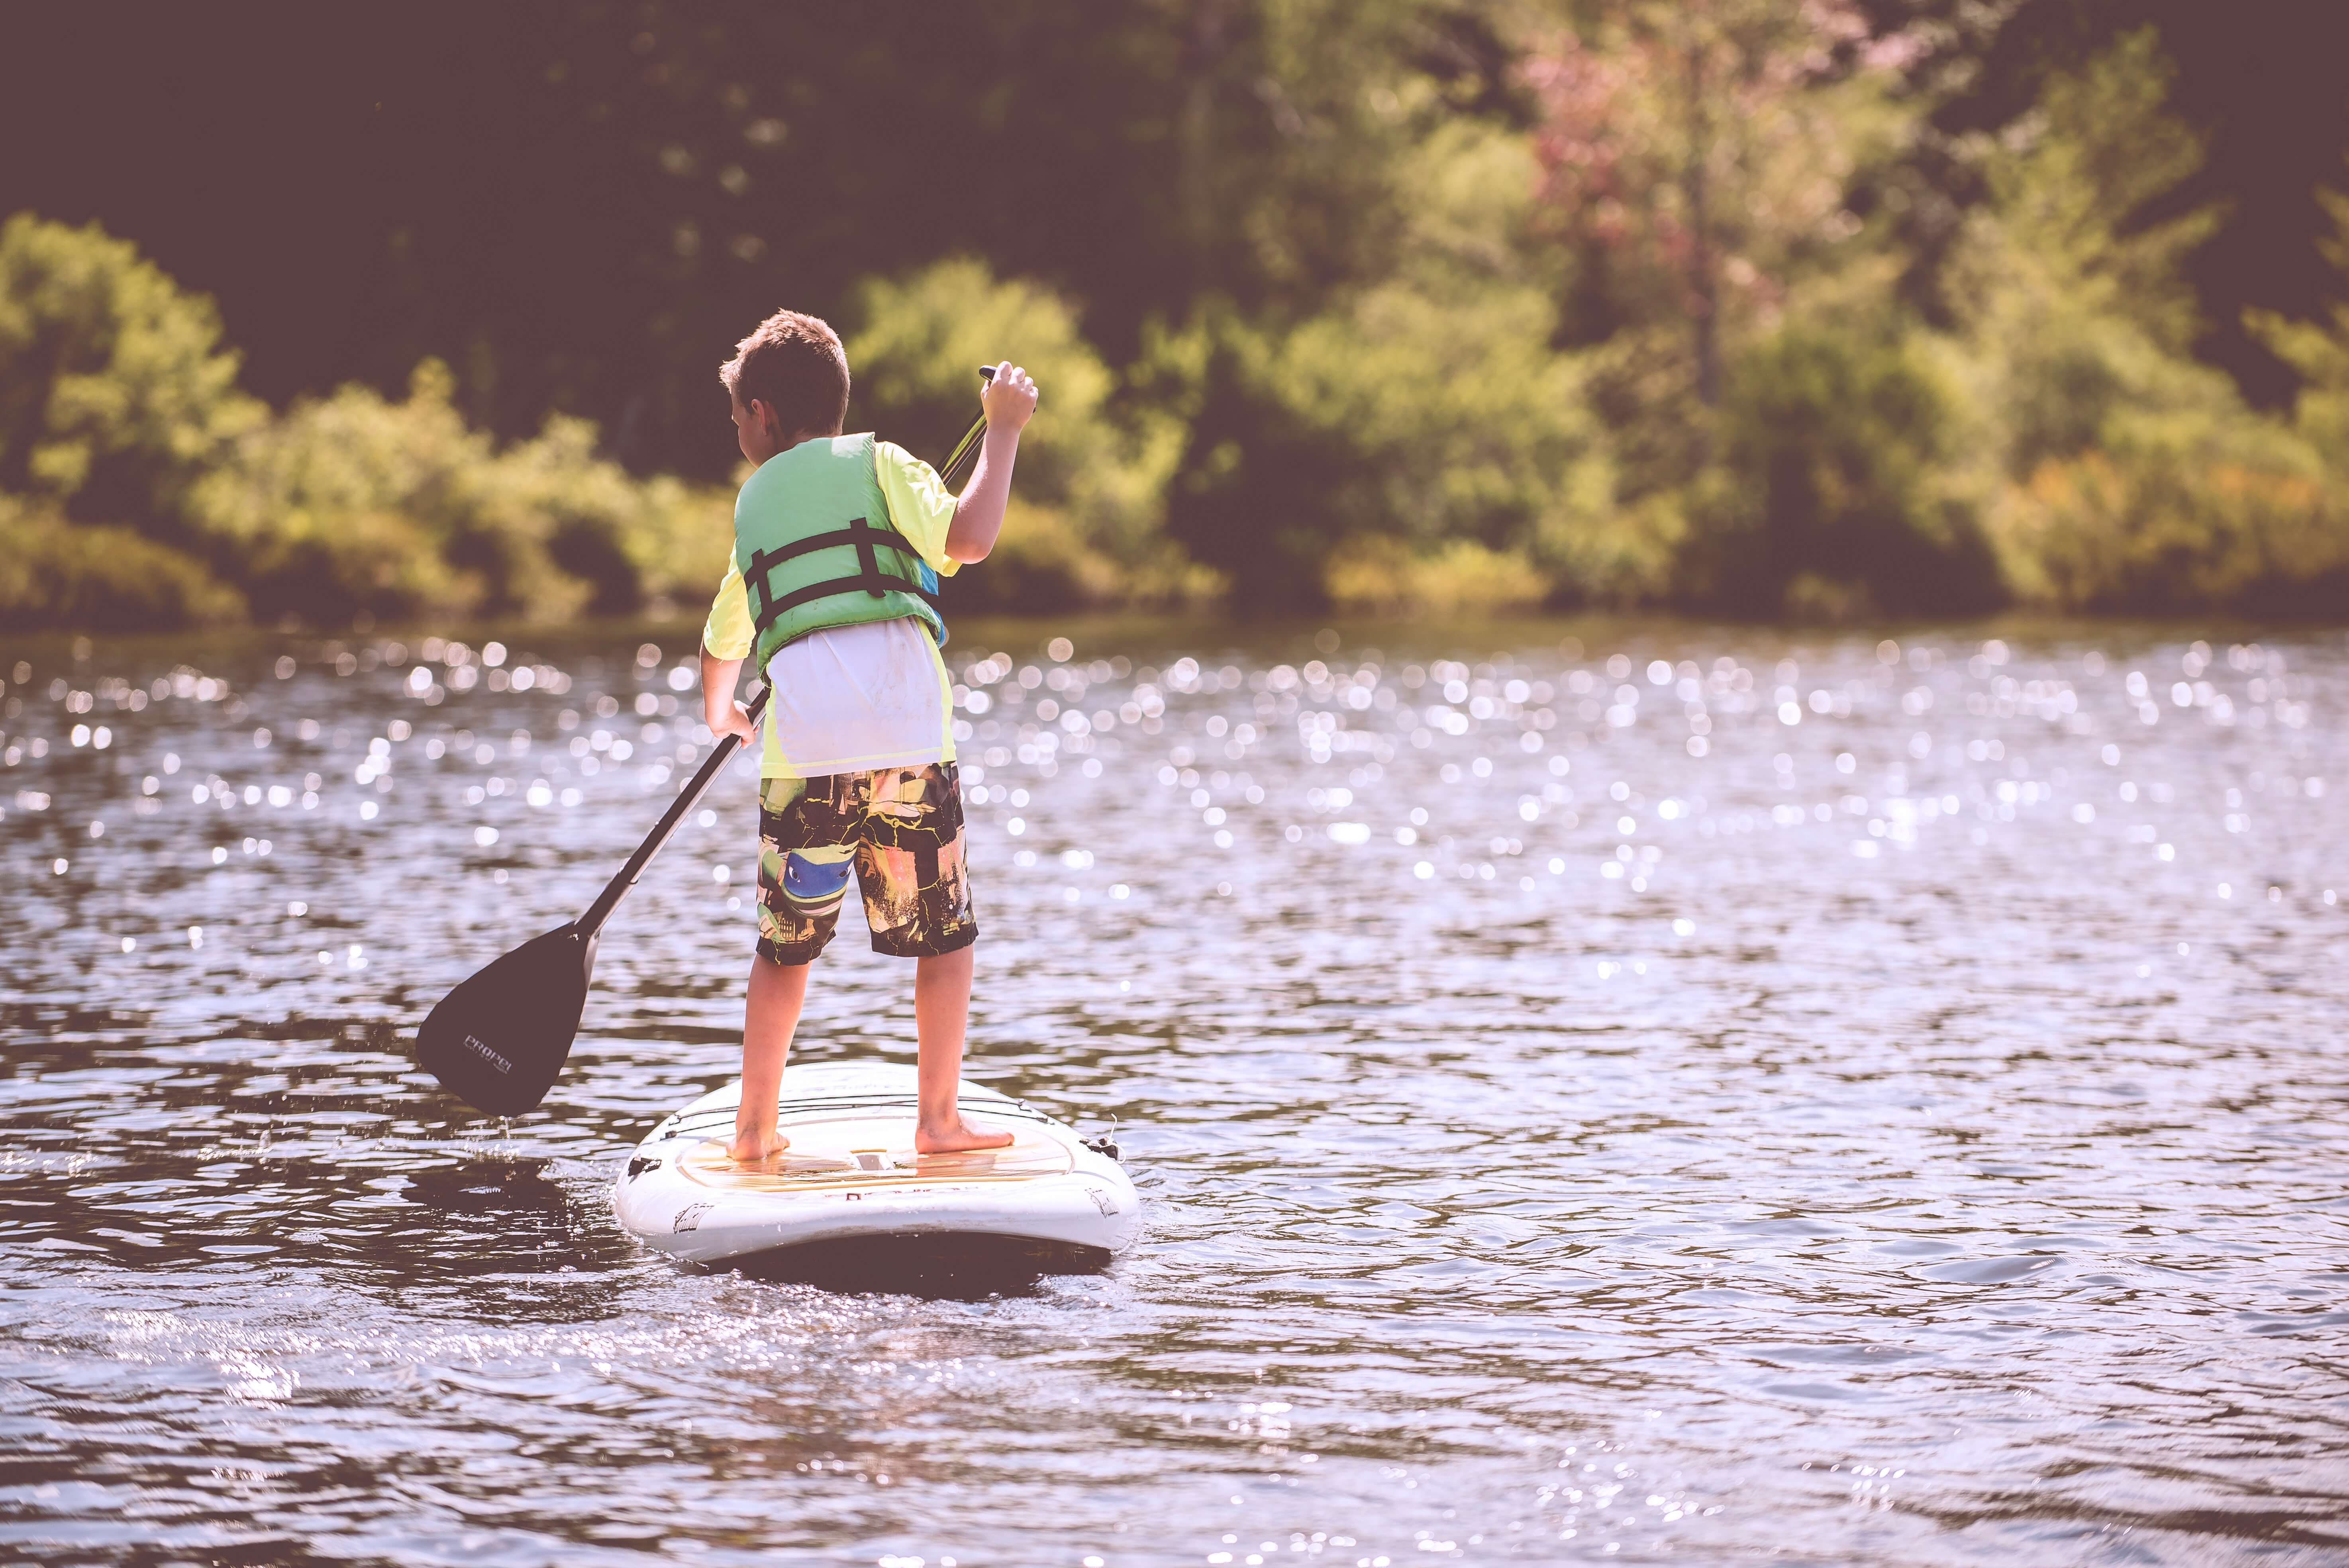 paddleboard is another summer thing to do in spain with kids